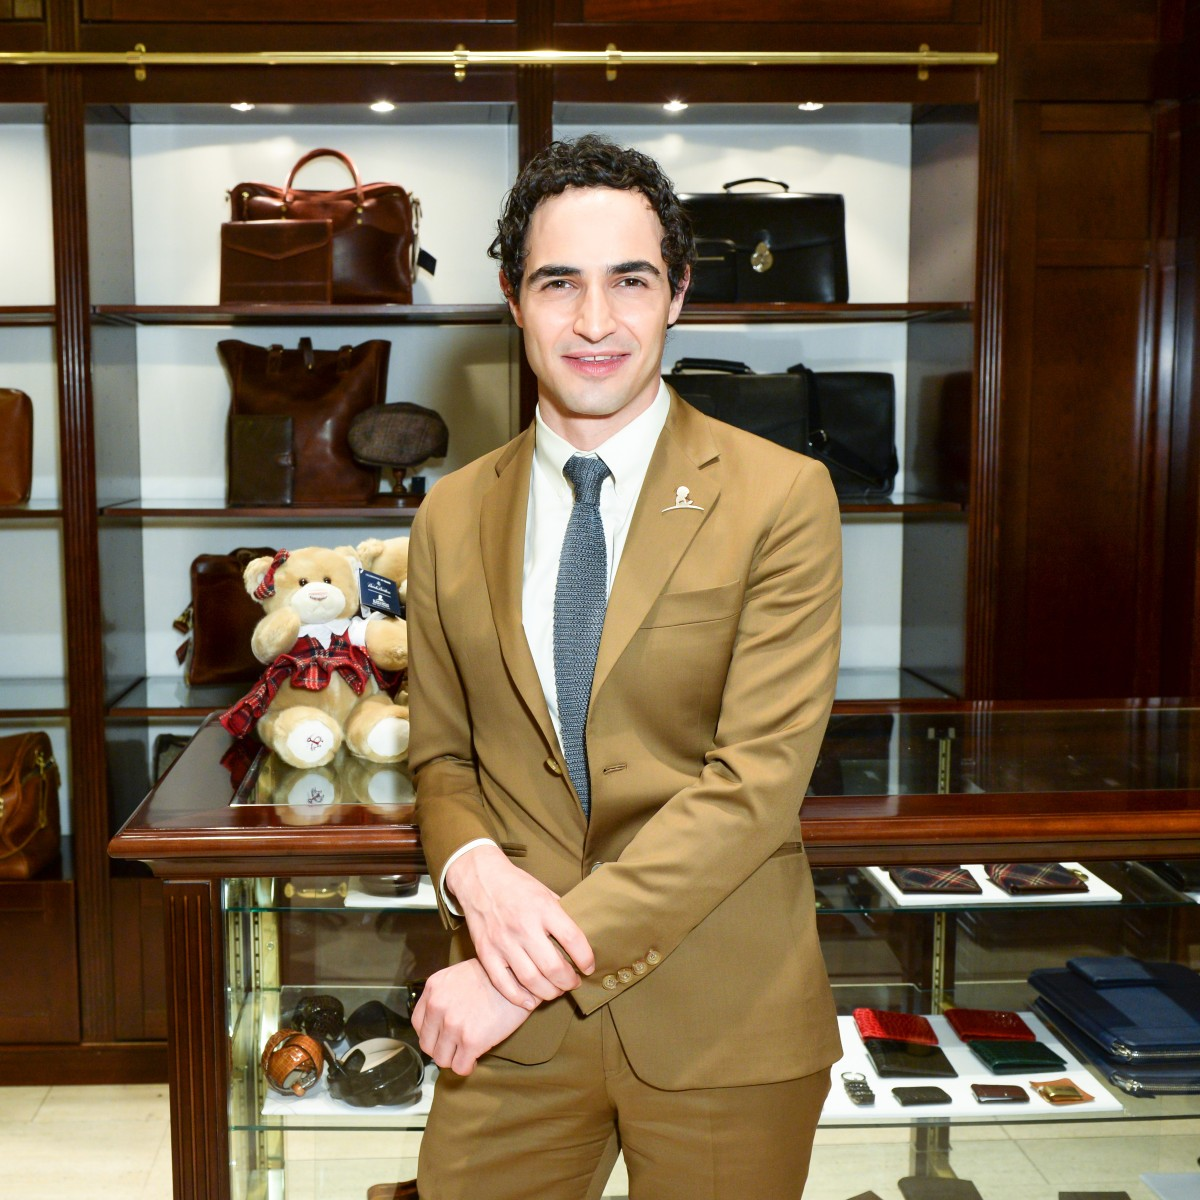 BROOKS BROTHERS Celebrates the Holidays with St. Jude Children's Research Hospital